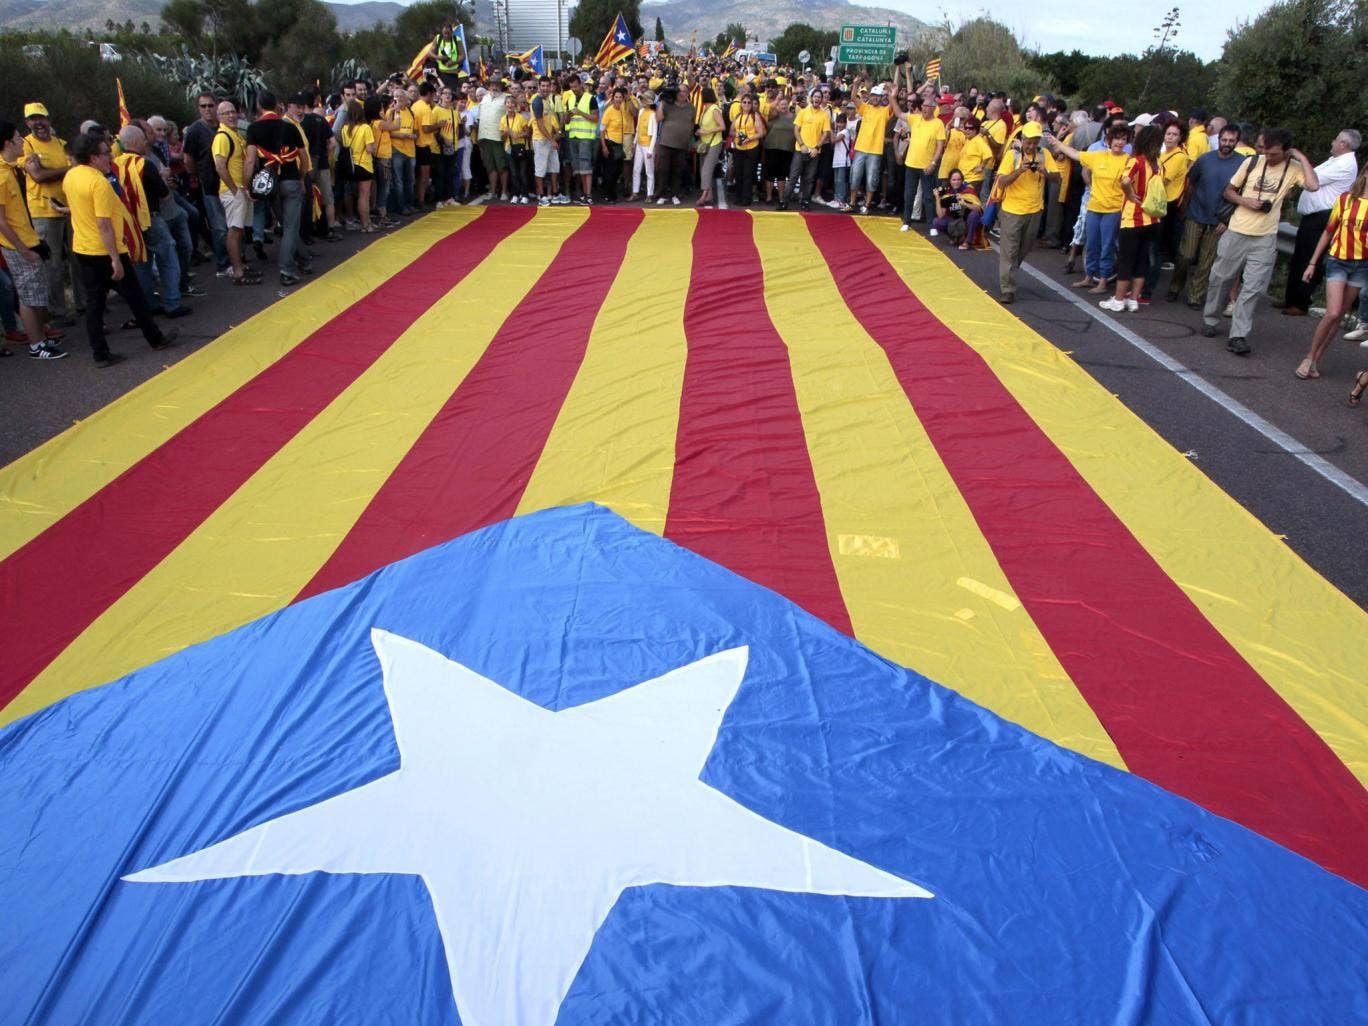 The Spanish government has rejected a call by the country's regional government of Catalonia to hold a referendum on independence next year